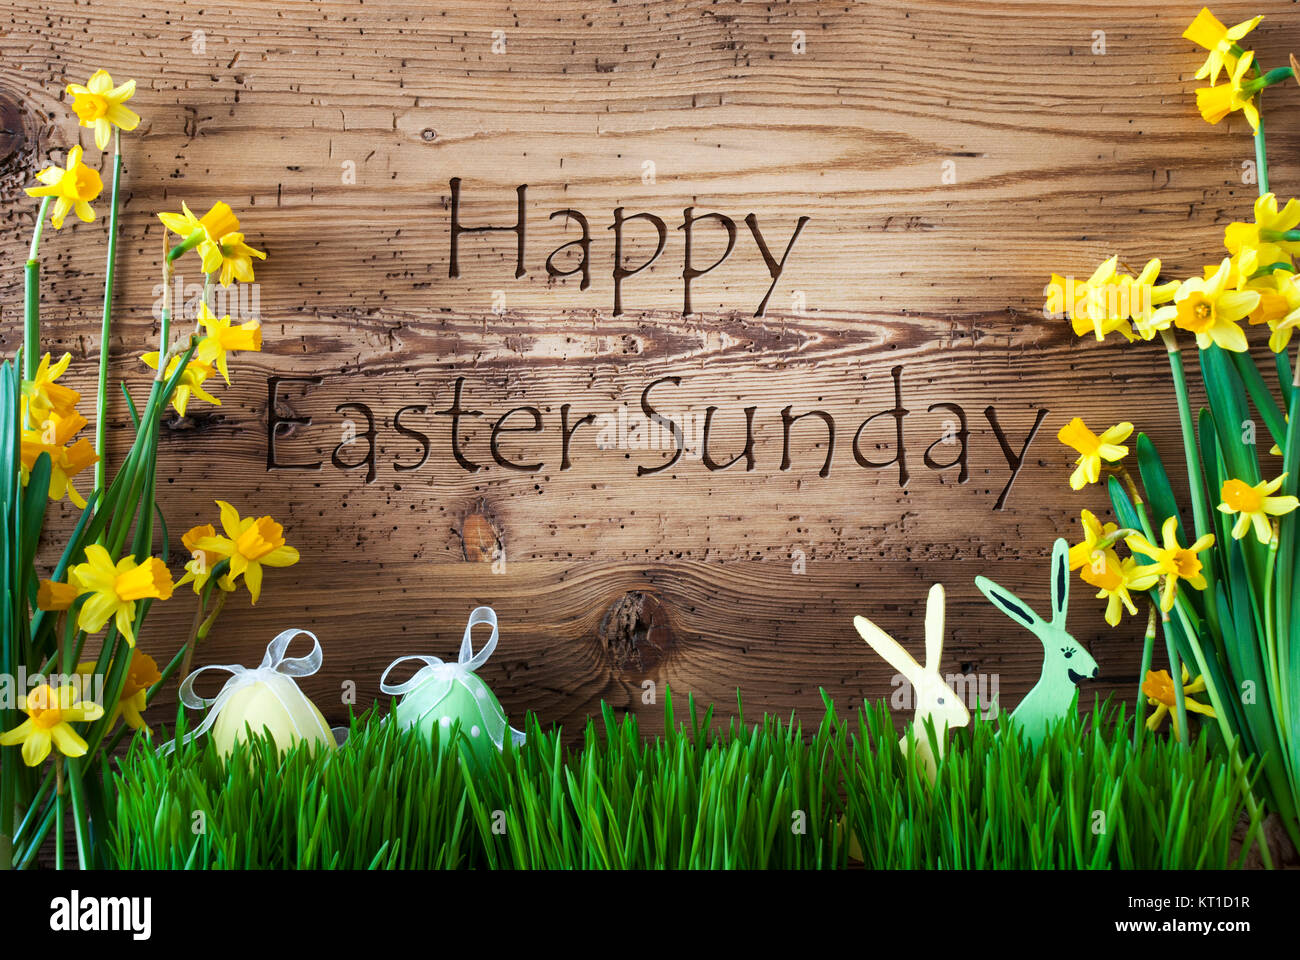 Wooden background with english text happy easter sunday easter wooden background with english text happy easter sunday easter decoration like easter eggs and easter bunny yellow spring flower narcisssus with gras m4hsunfo